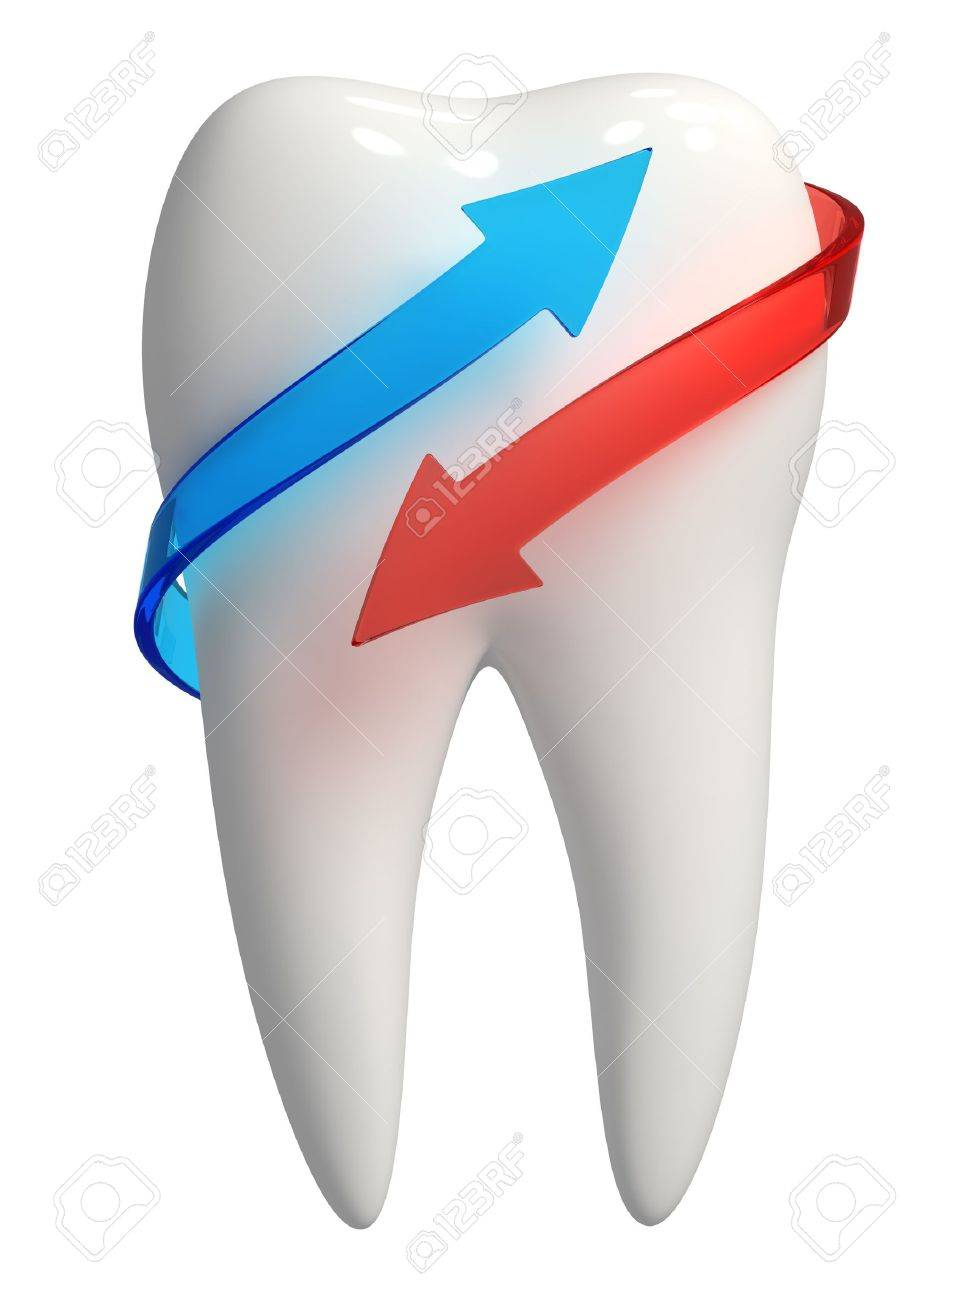 3d rendered photo-realistic white tooth with blue and red semi-transparent arrows - Isolated icon on white background Stock Photo - 11035944